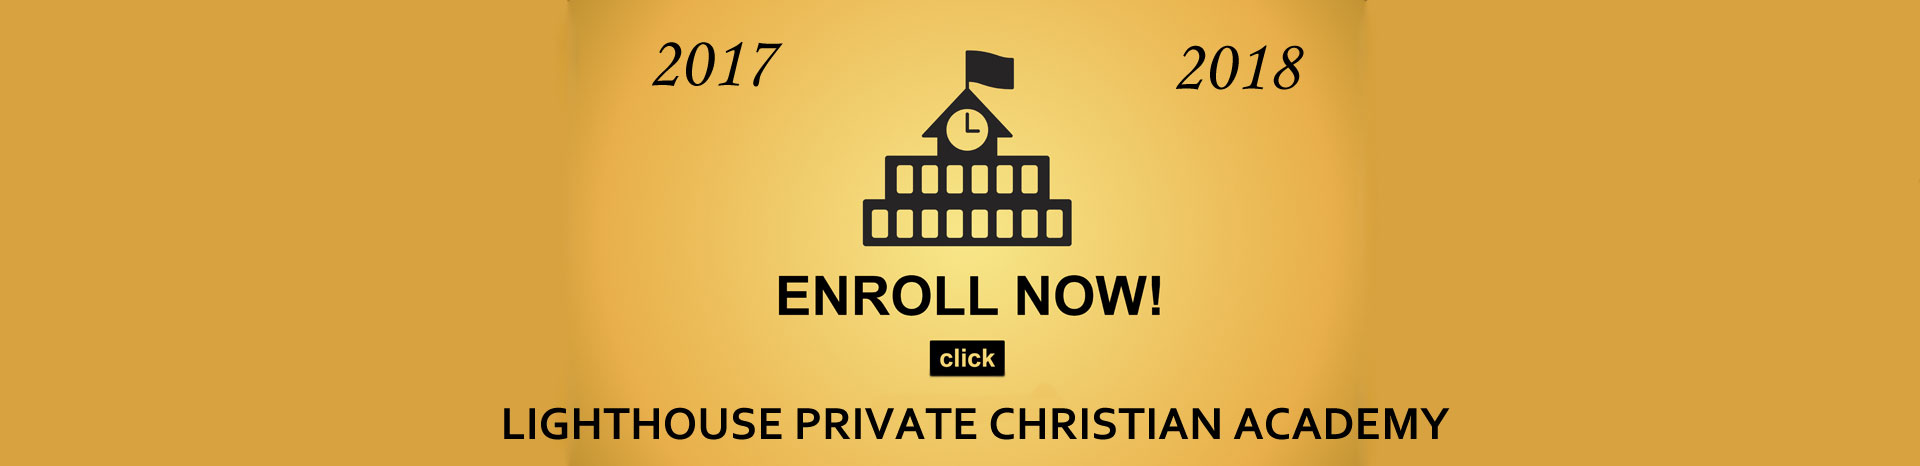 lighthouse private christian academy enrollment